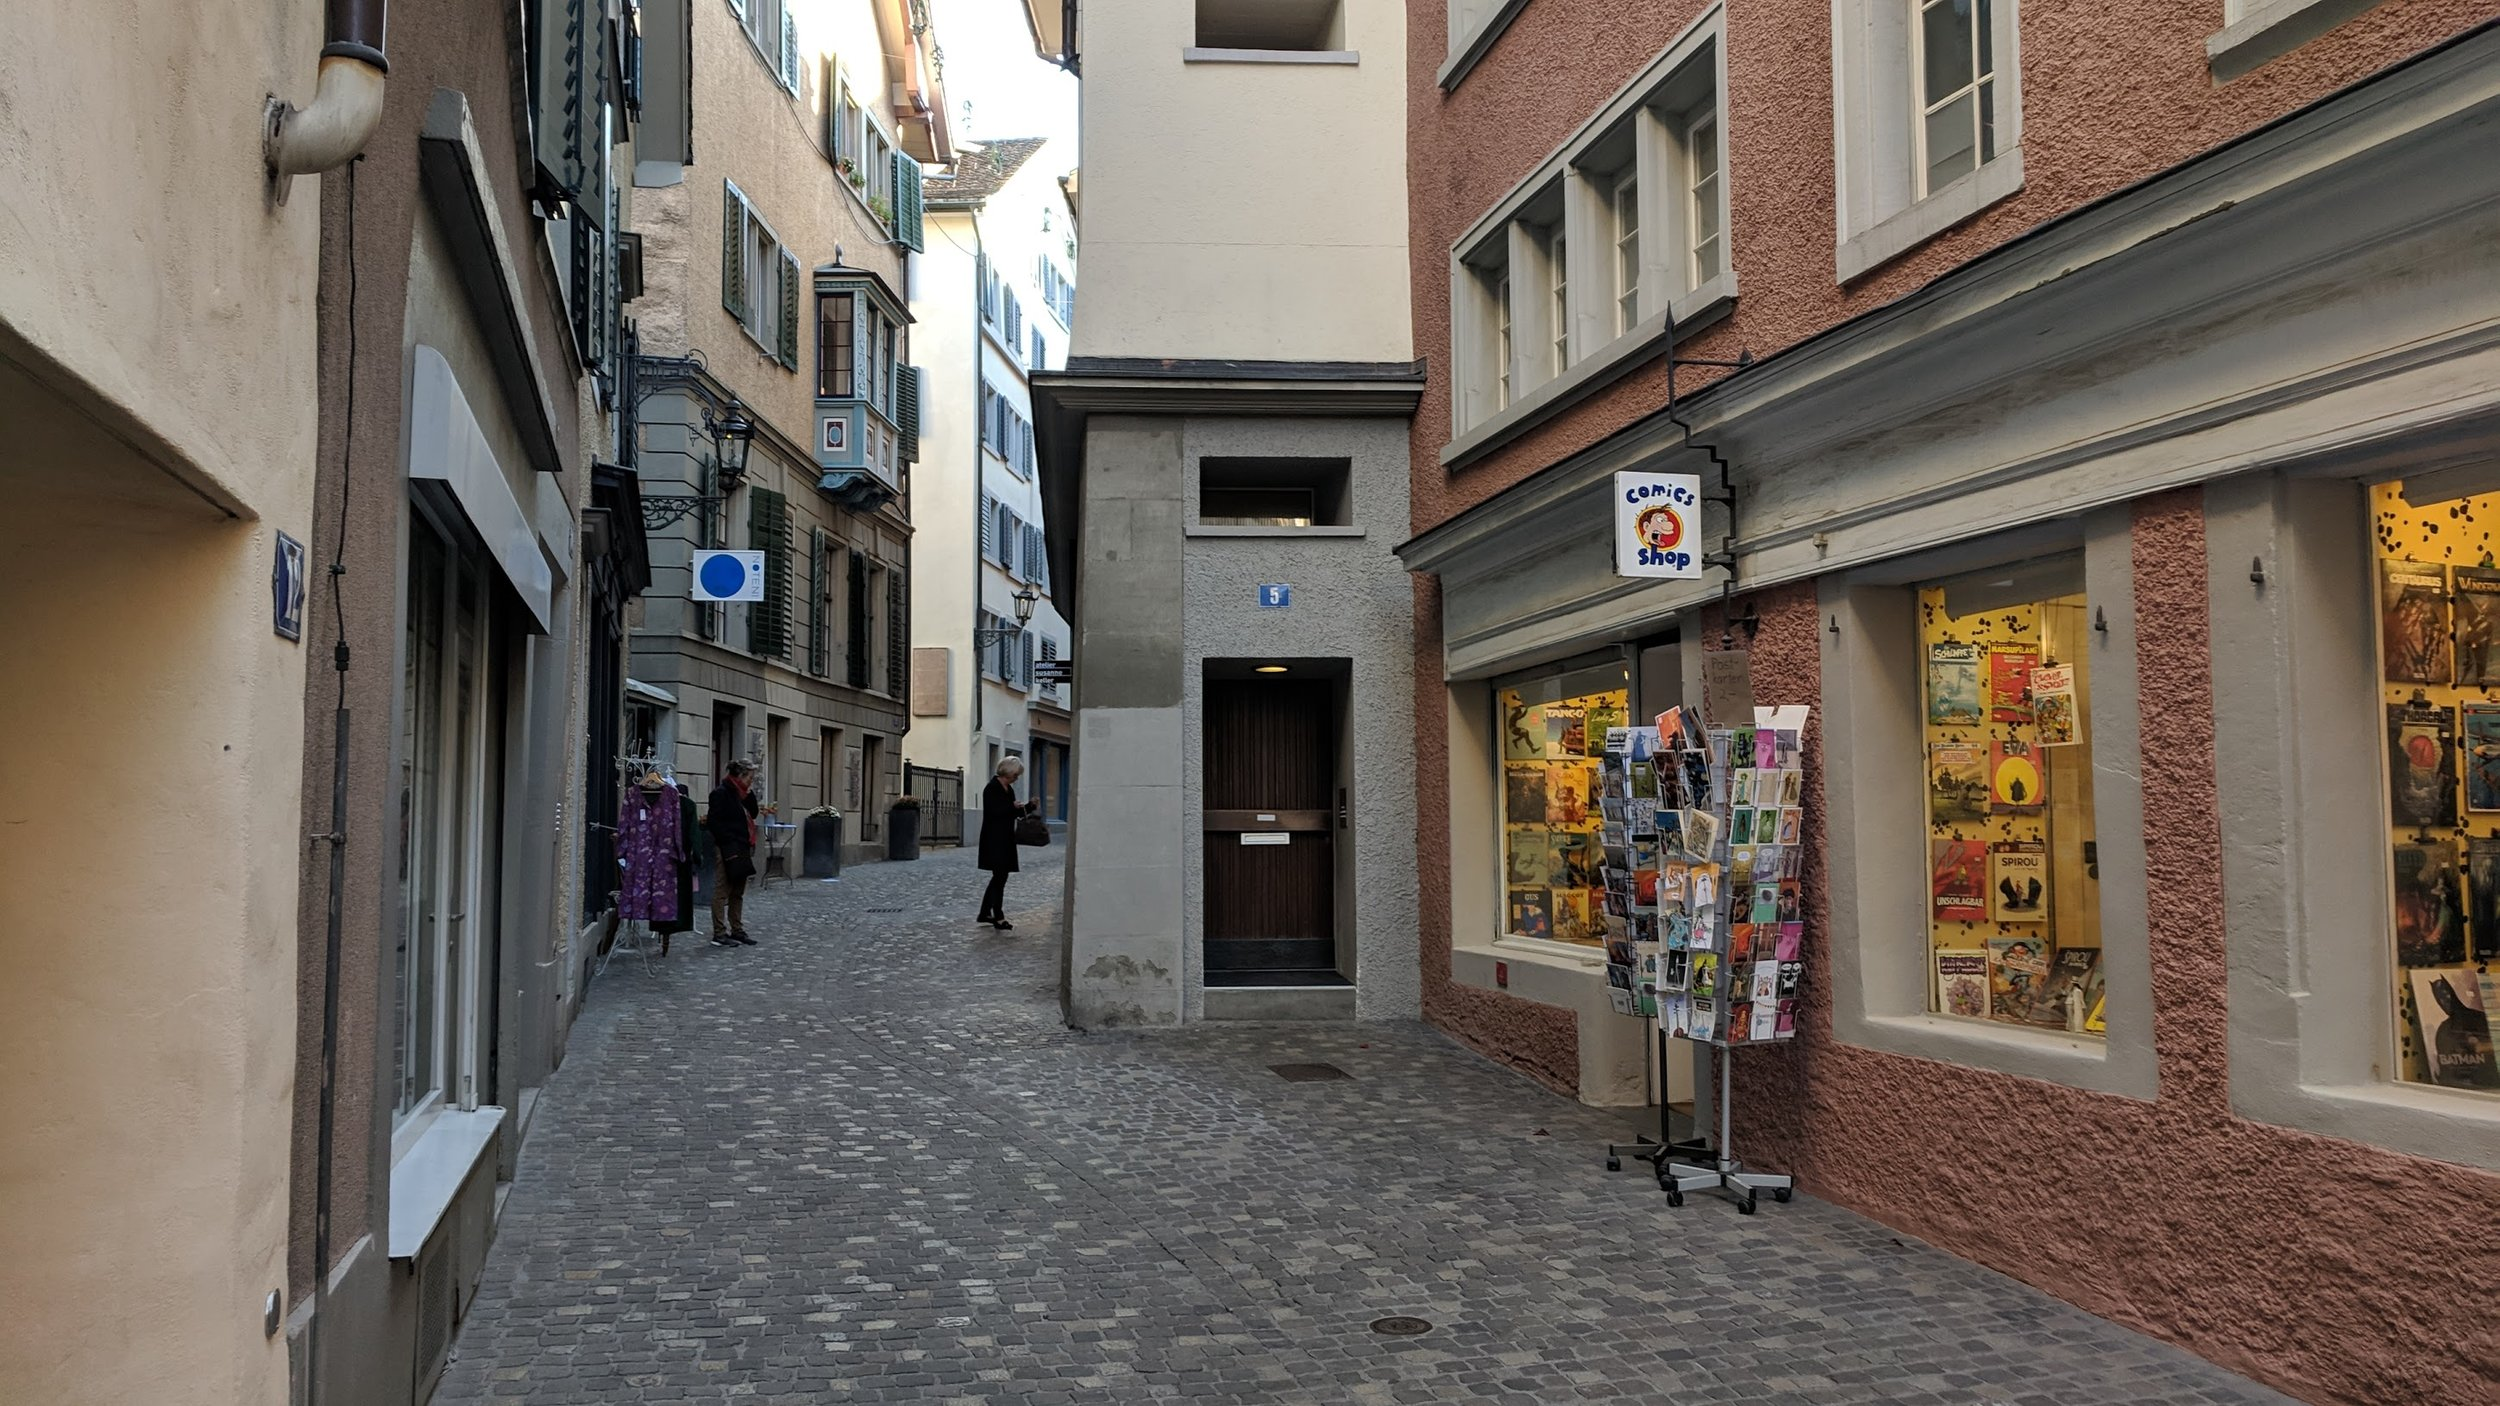 A street in Zurich, Switzerland that suddenly narrows because a building sticks out into the street further than its neighborhood.